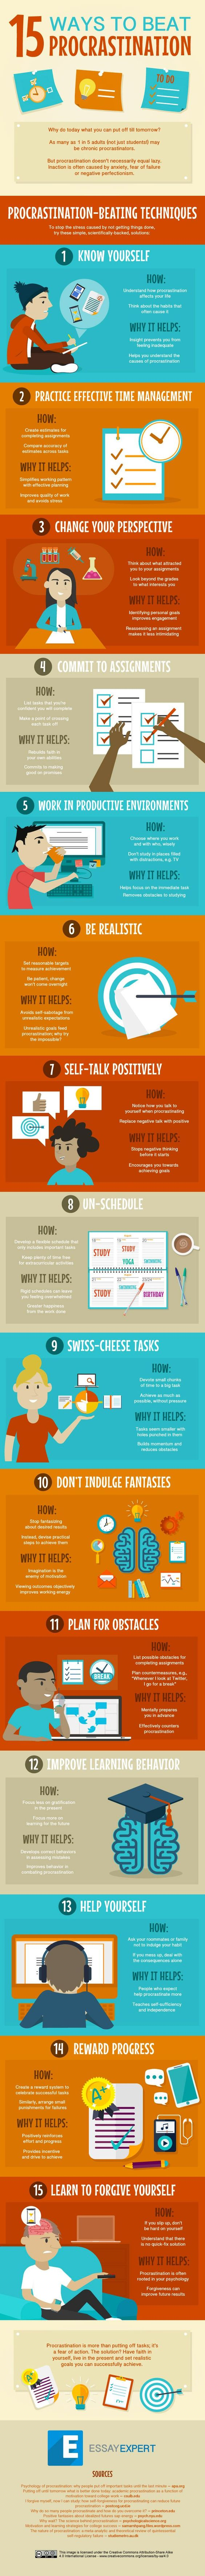 Practical tips on avoiding procrastination. 15 Ways to Overcome Procrastination and Get Stuff Done (Infographic)